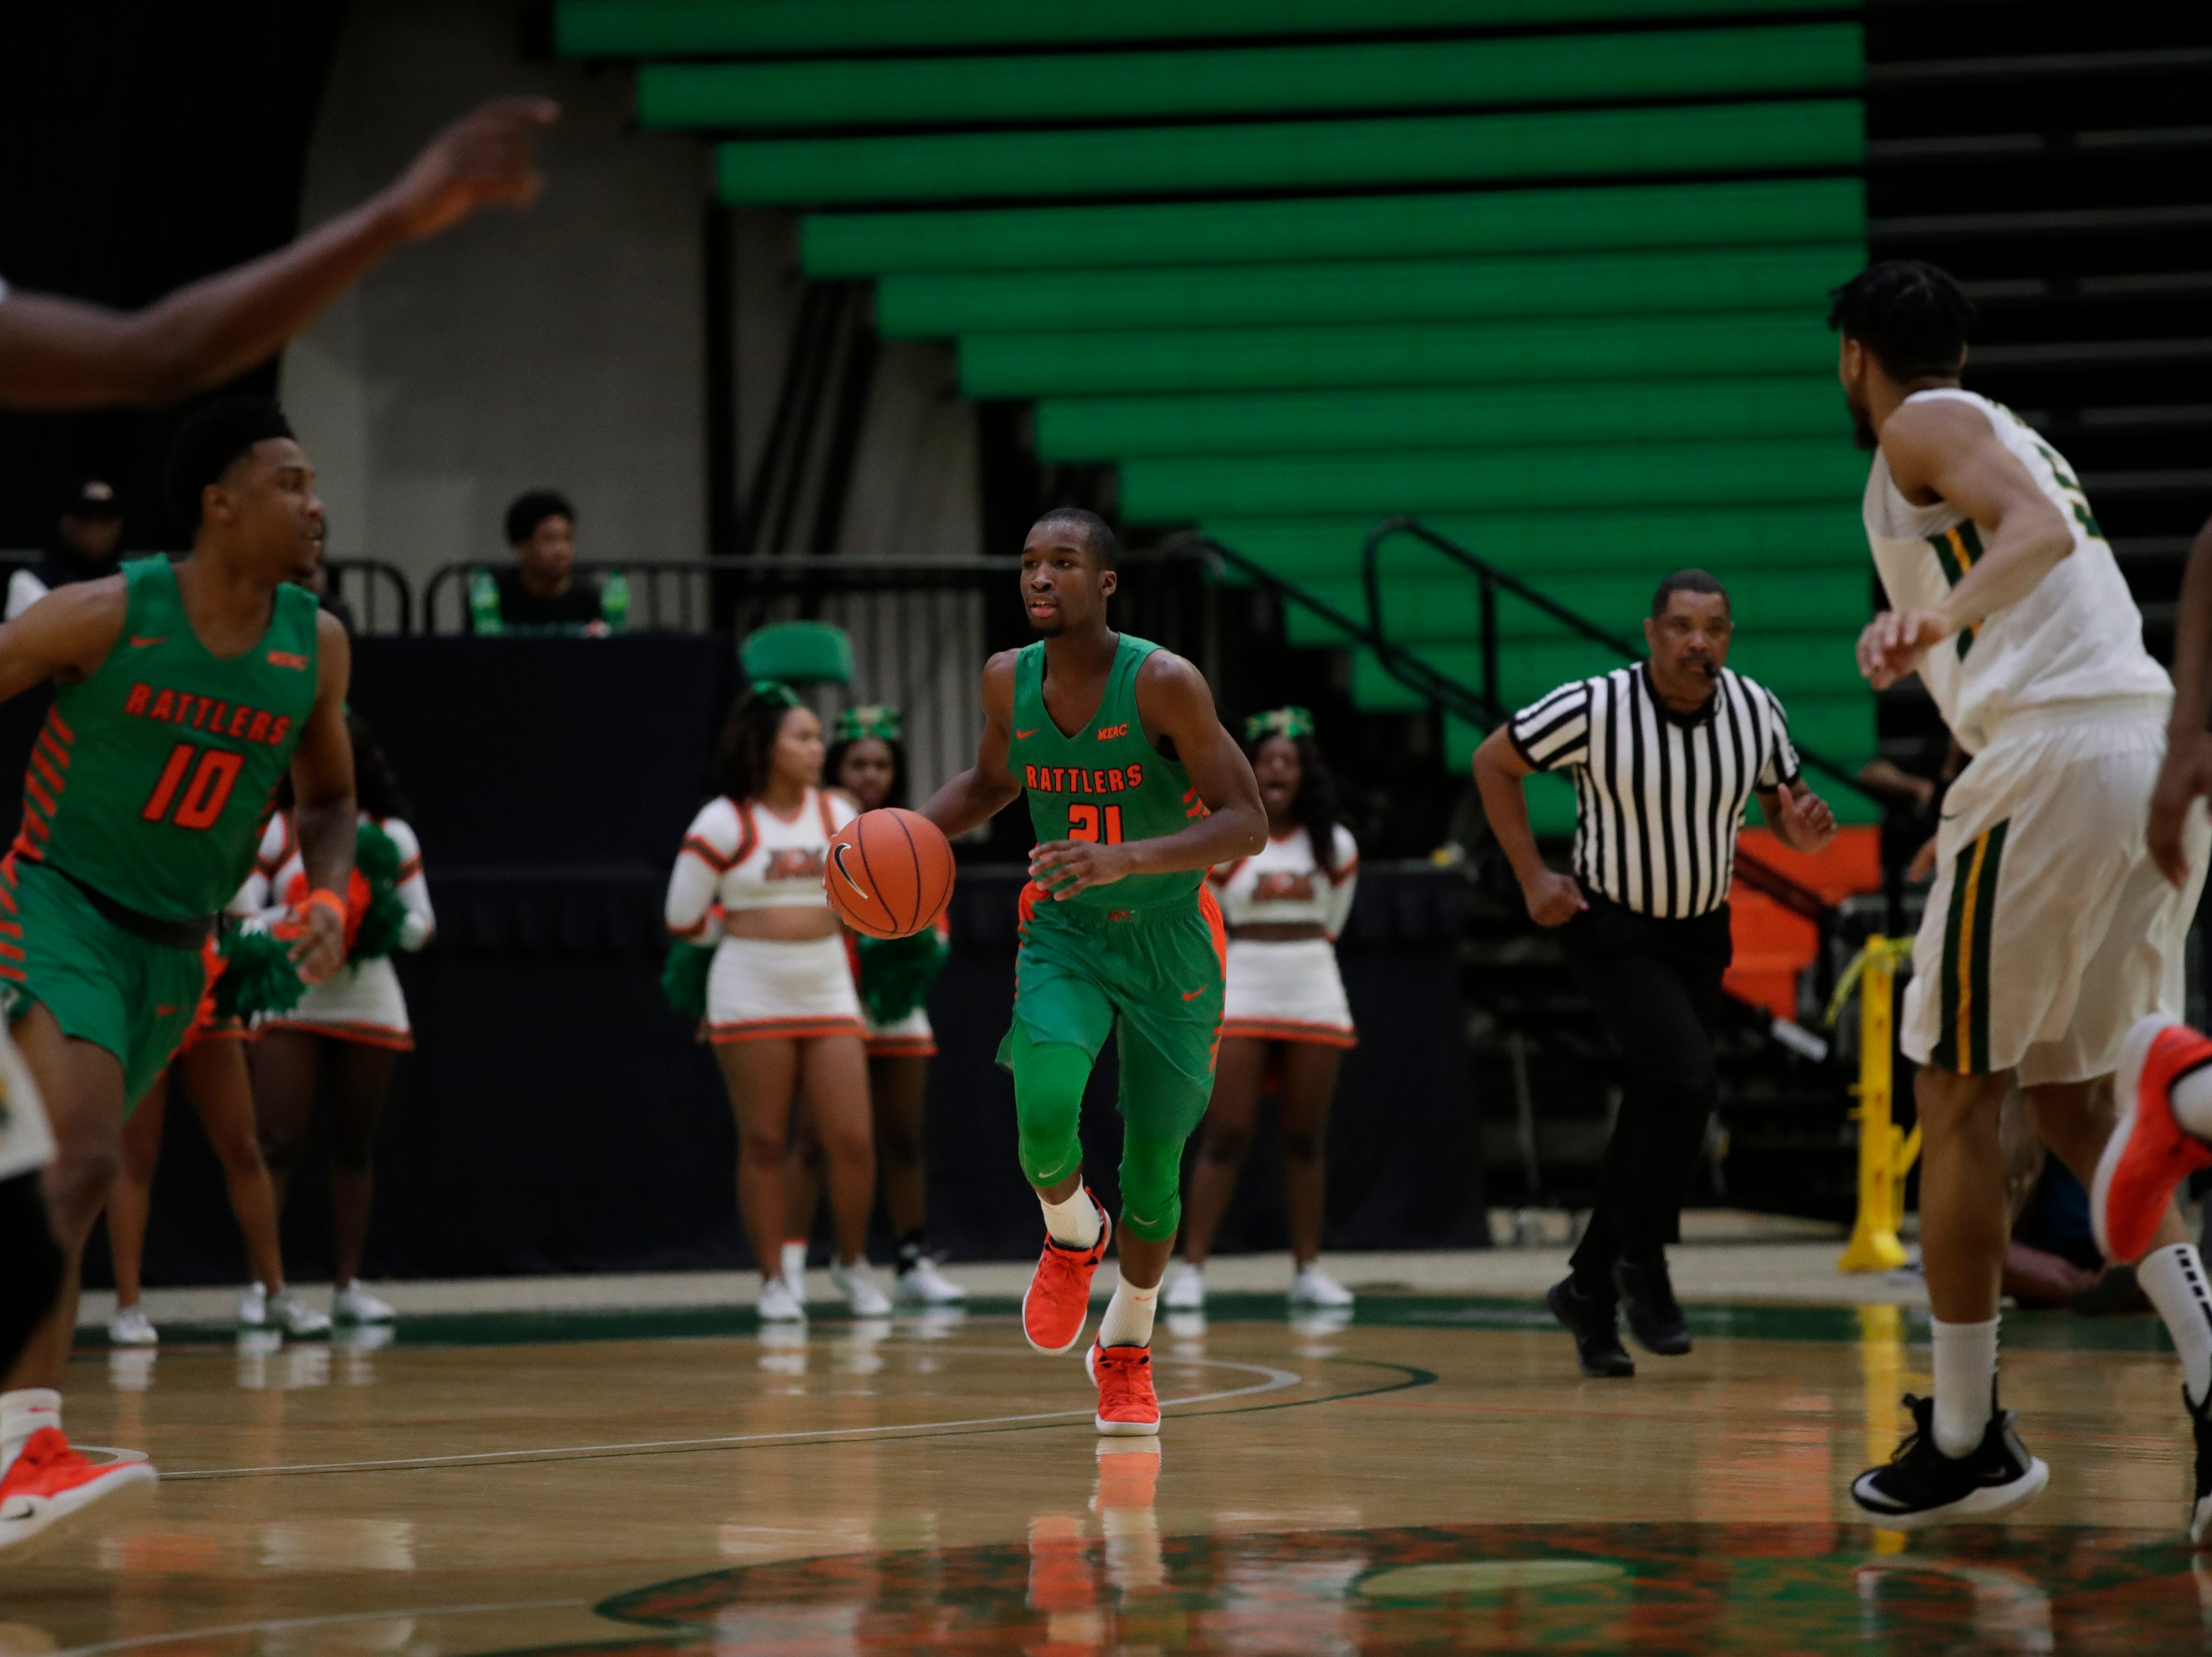 Florida A&M Rattlers guard Justin Ravenel (21) brings the ball up during a game between FAMU and Norfolk State at the Alfred Lawson Jr. Multipurpose Center Monday, Feb. 11, 2019.